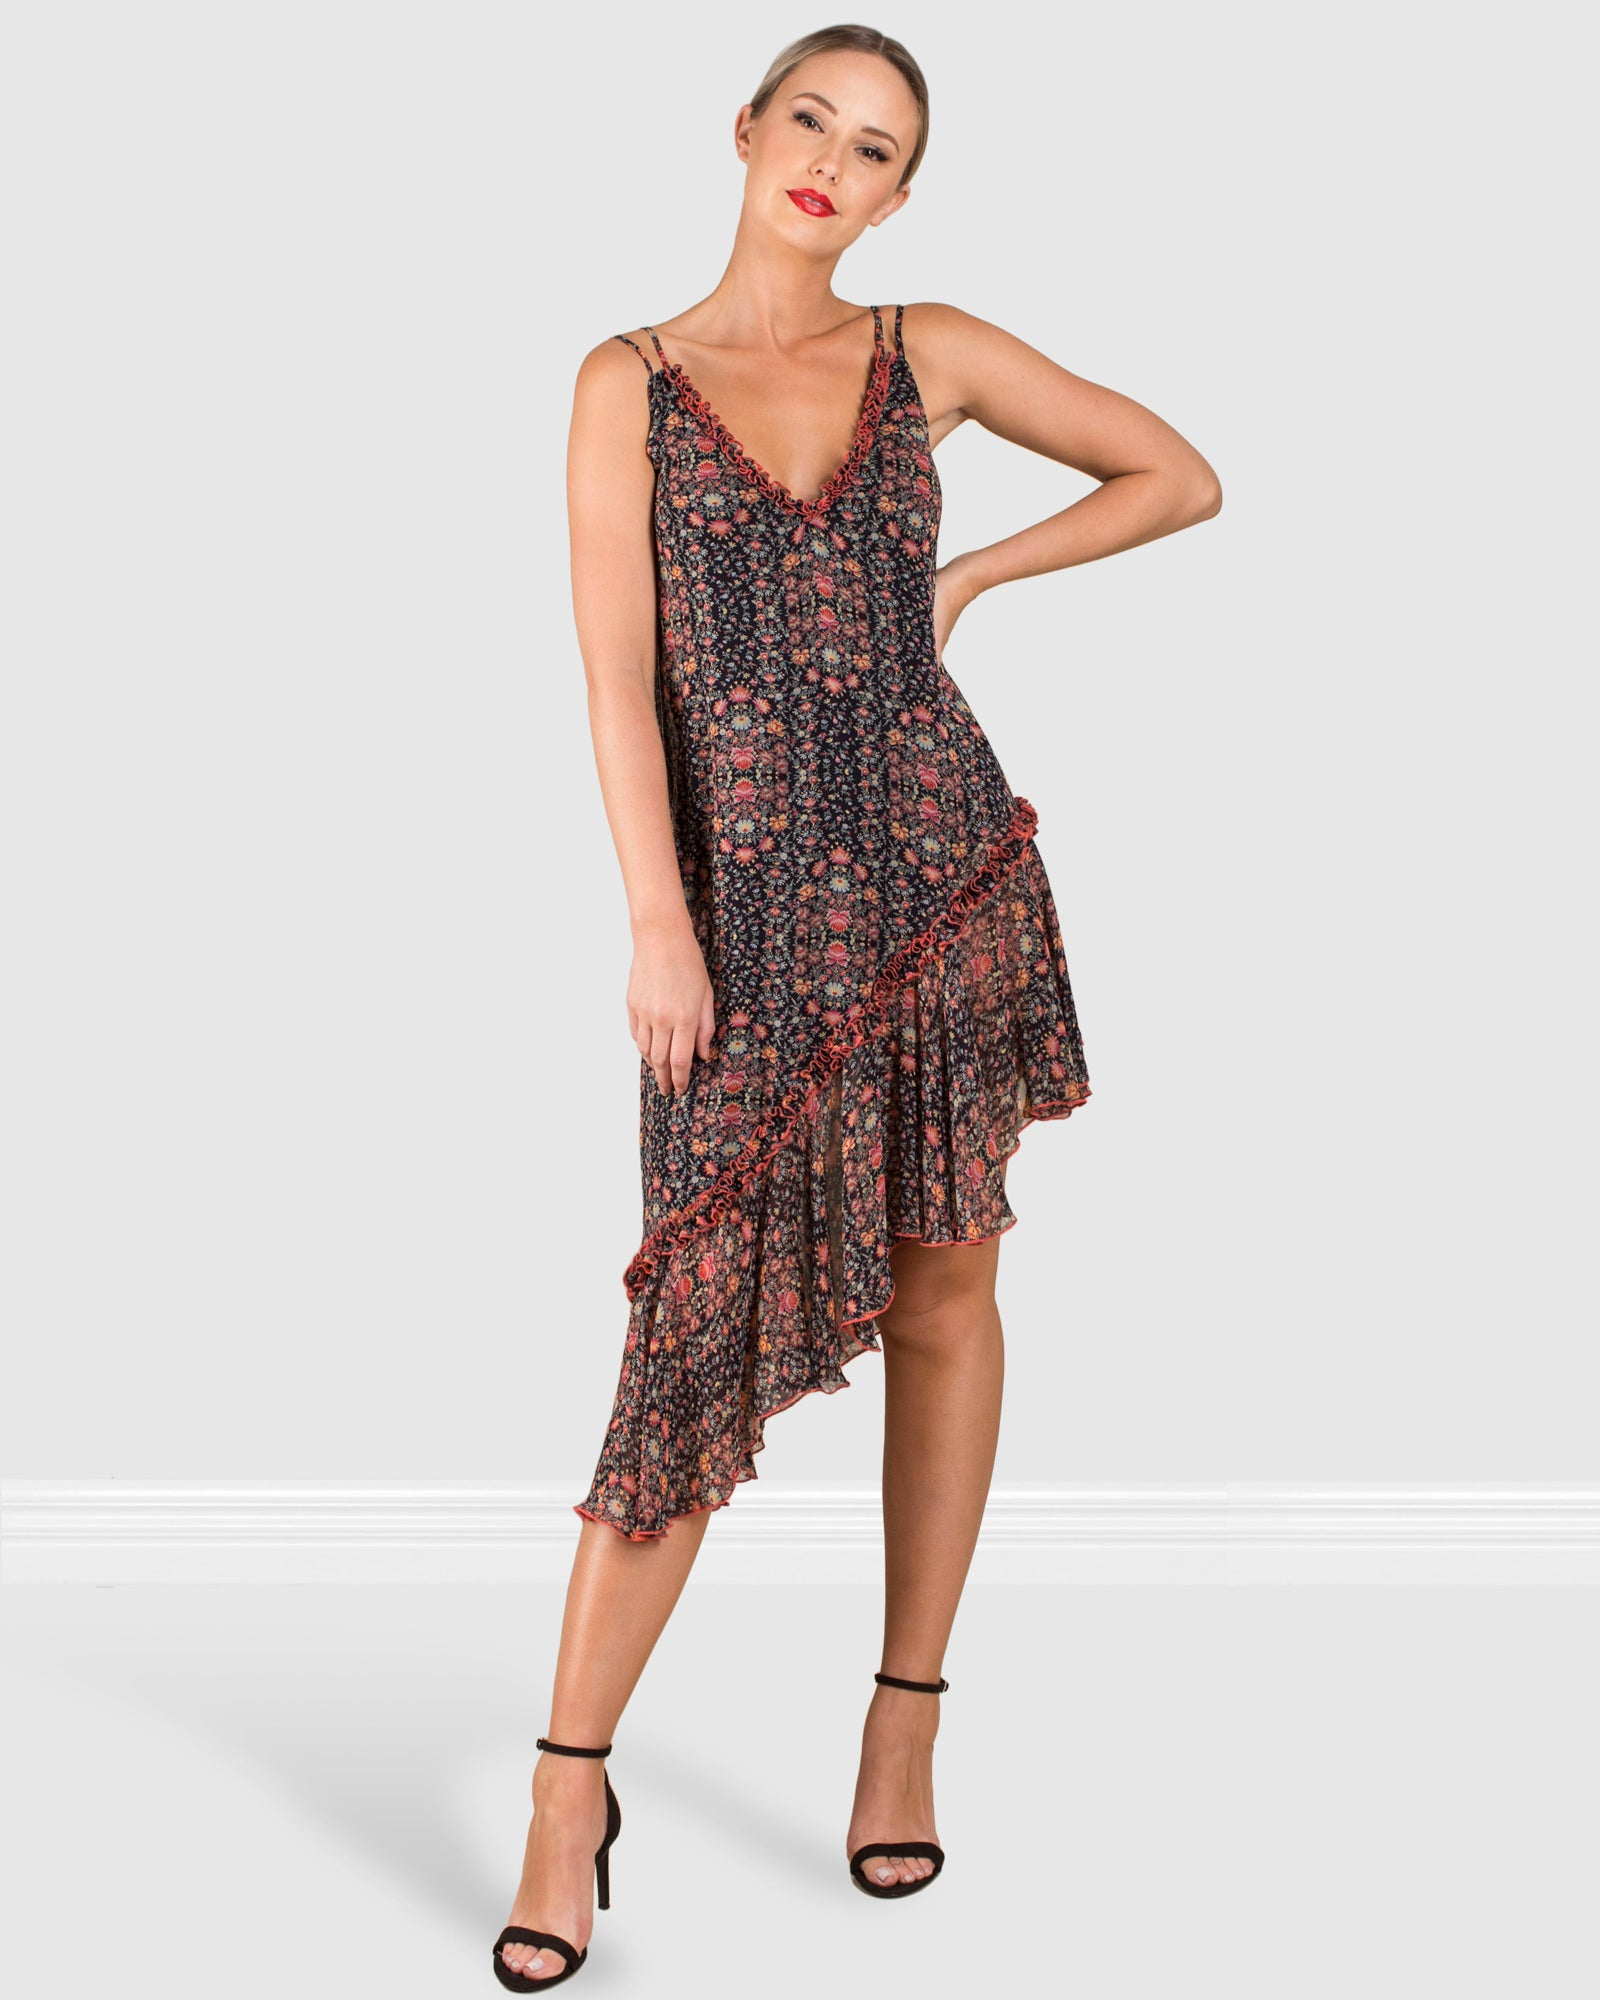 THE DOUBLE STRAP ASYMMETRICAL PRINTED DRESS